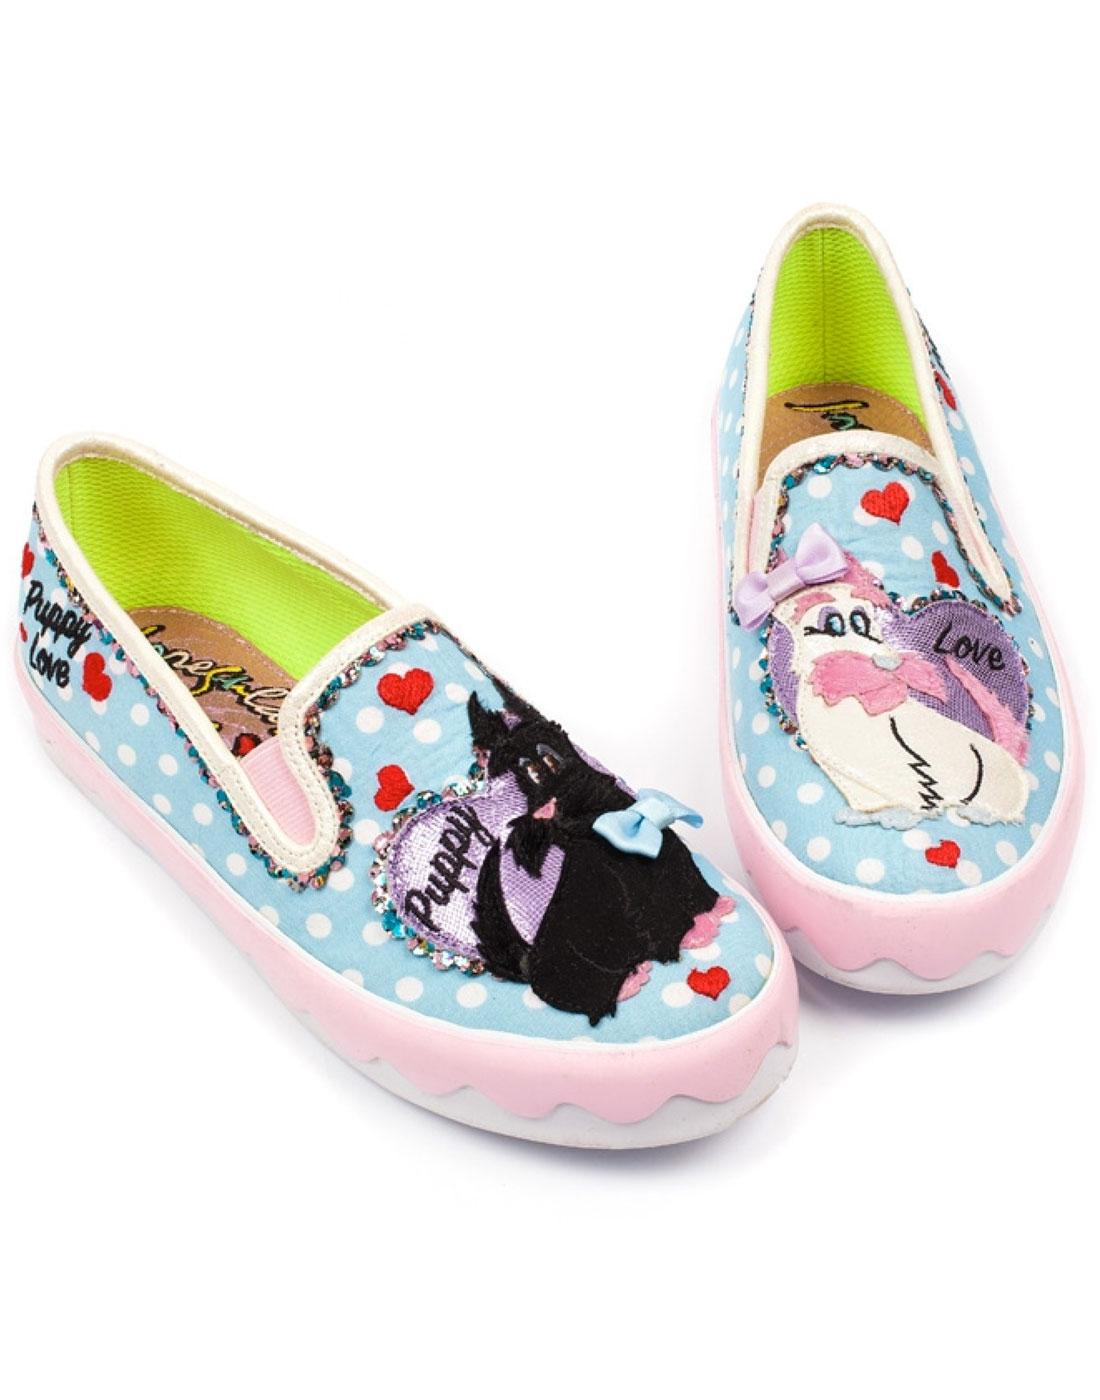 Puppy Love IRREGULAR CHOICE Retro Doggy Trainers